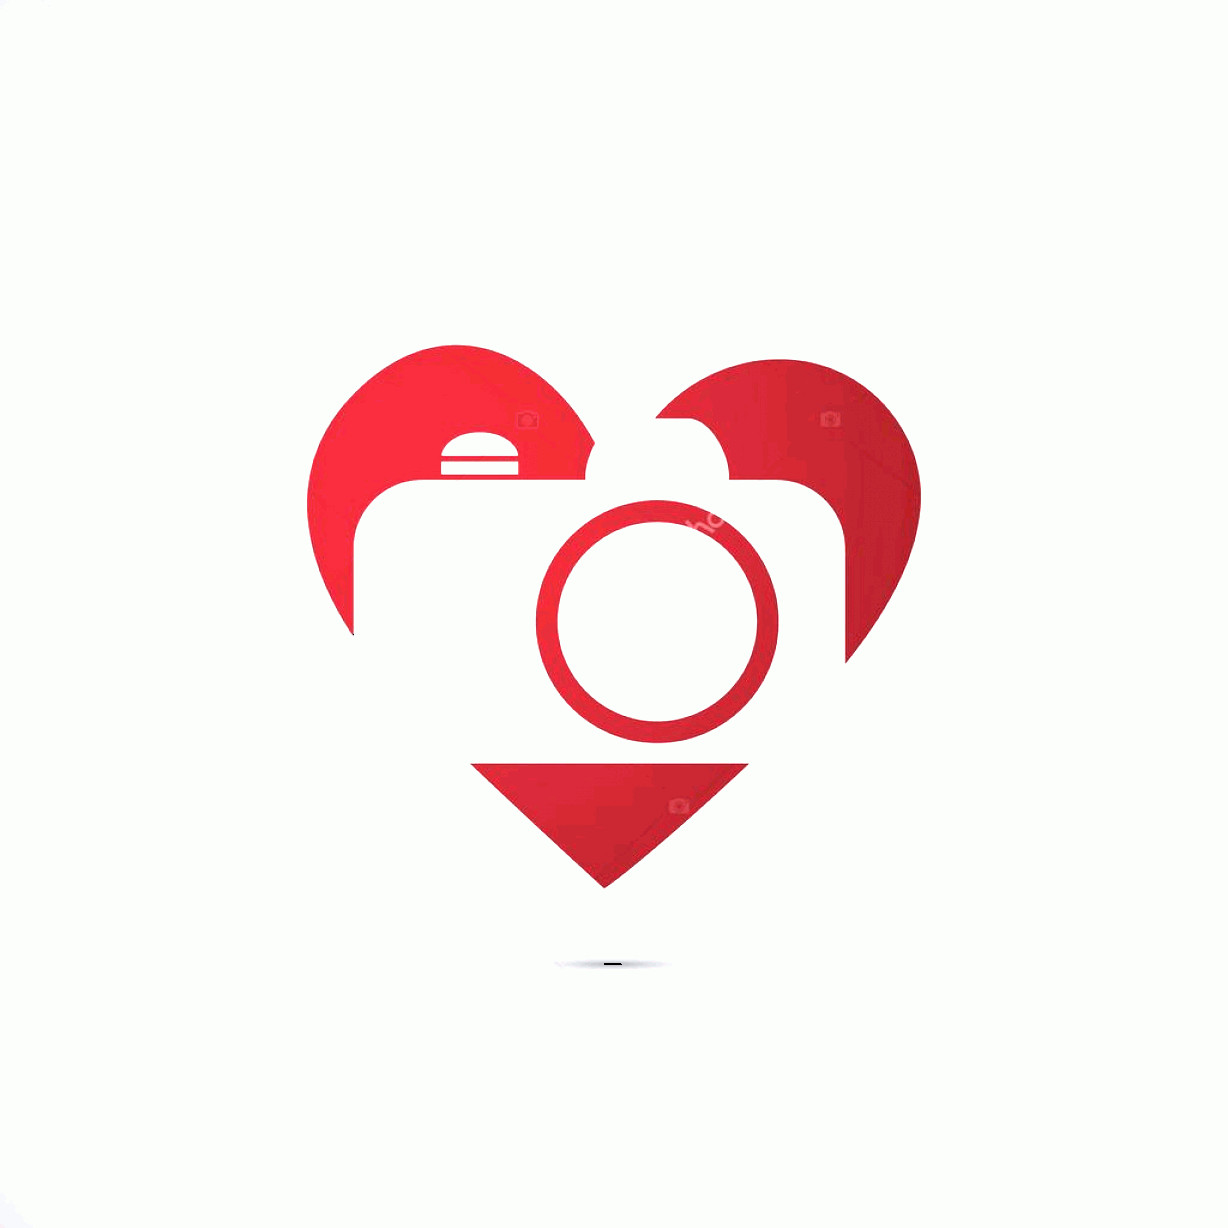 Camera Heart Clip Art Vector: Stock Illustration I Love Photography Camera Icon